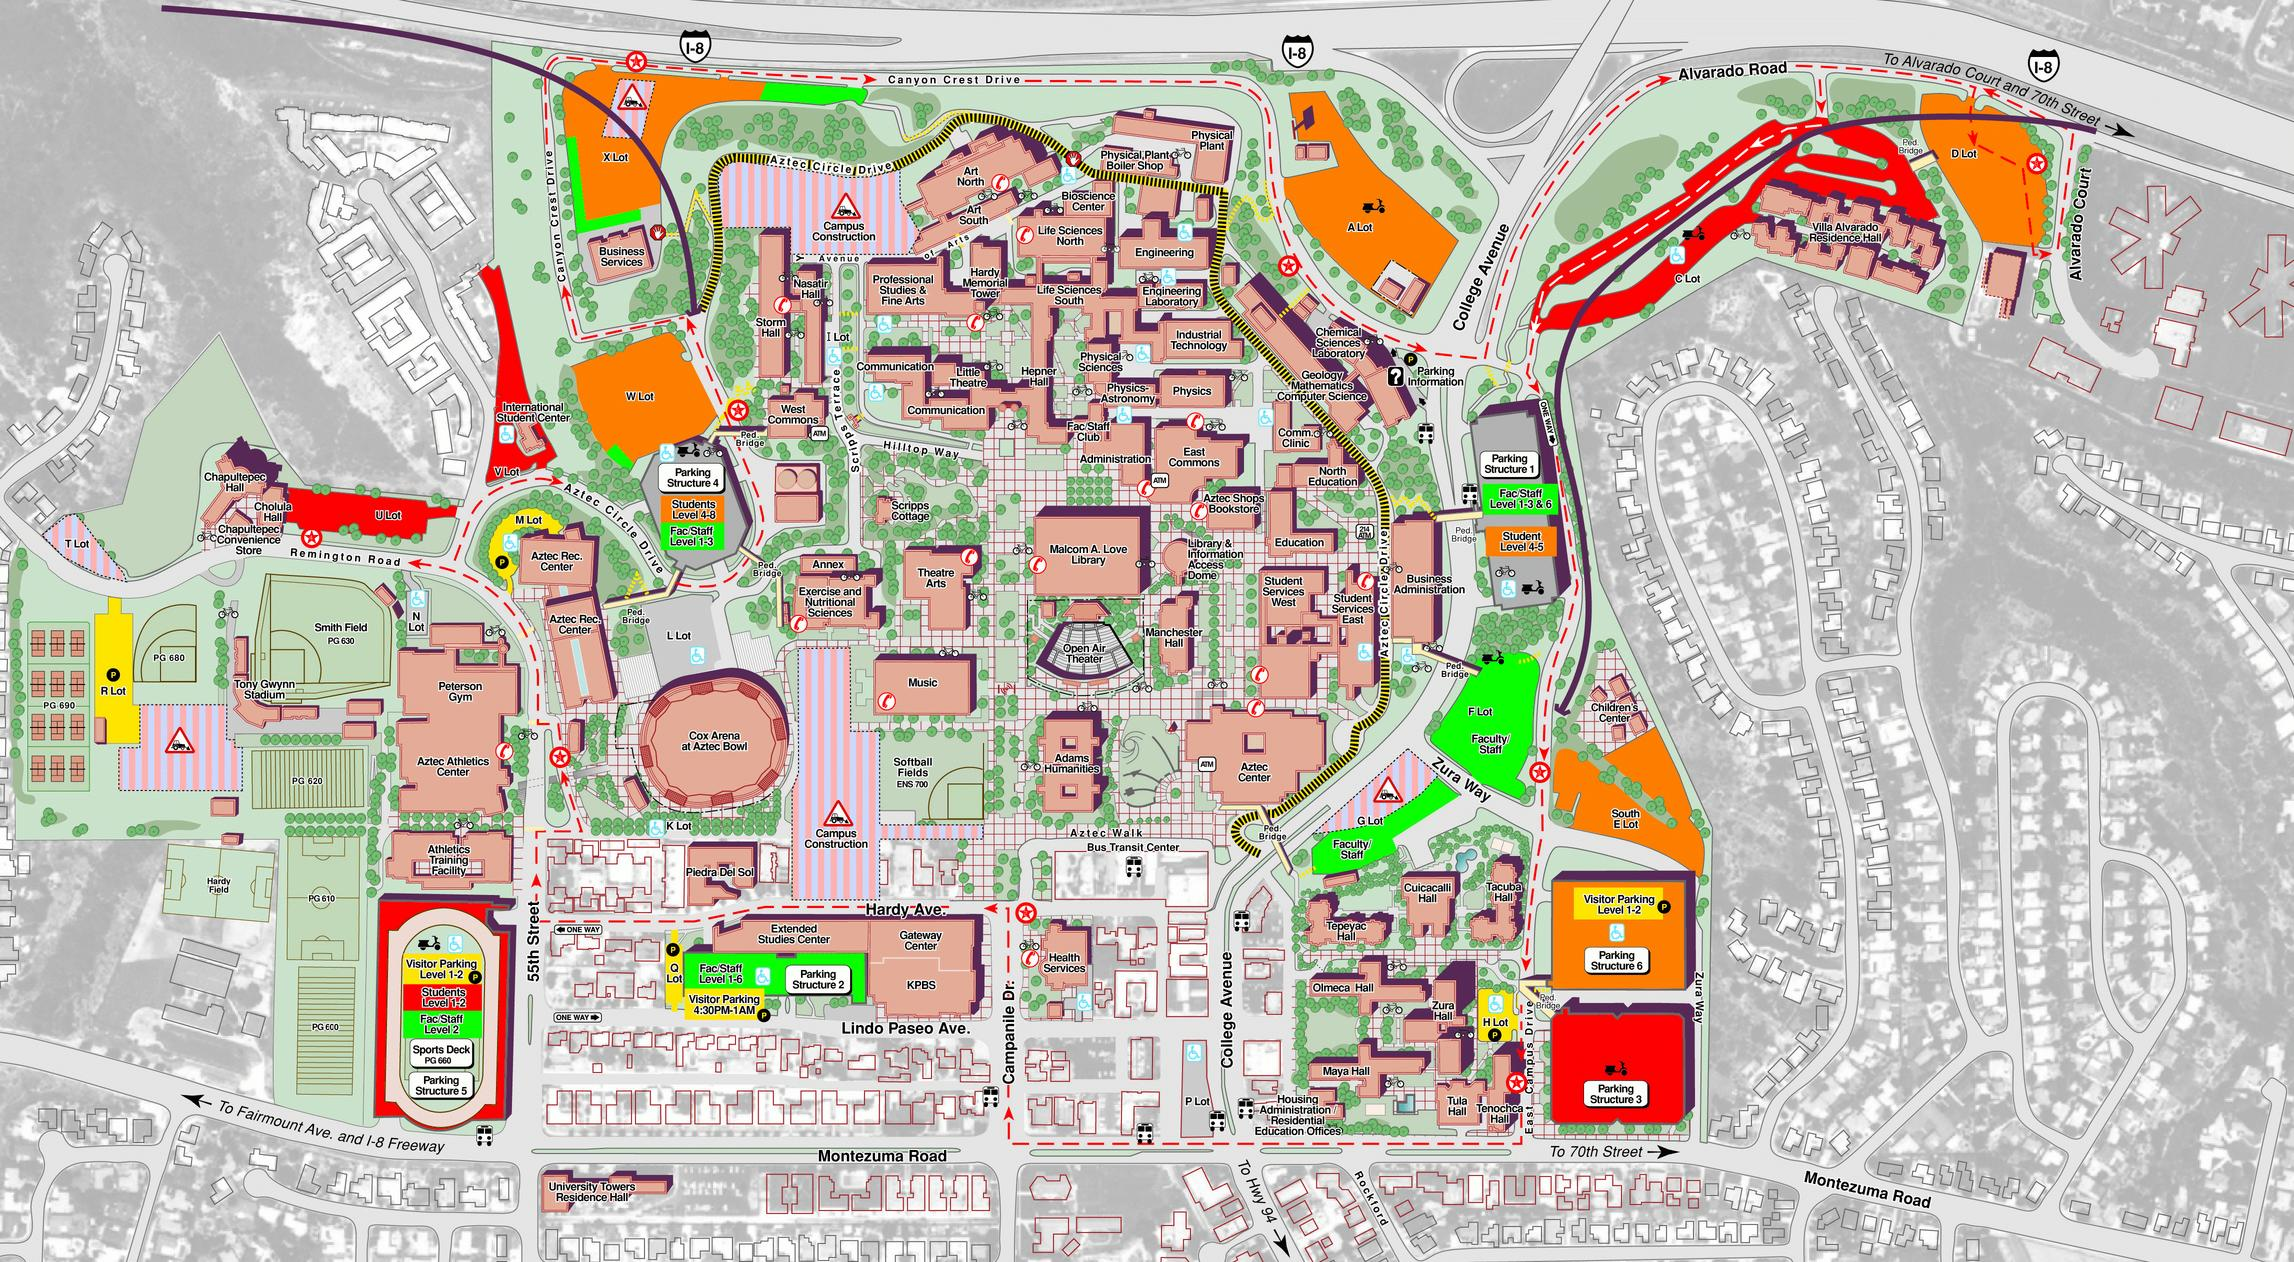 San Diego State University Campus map